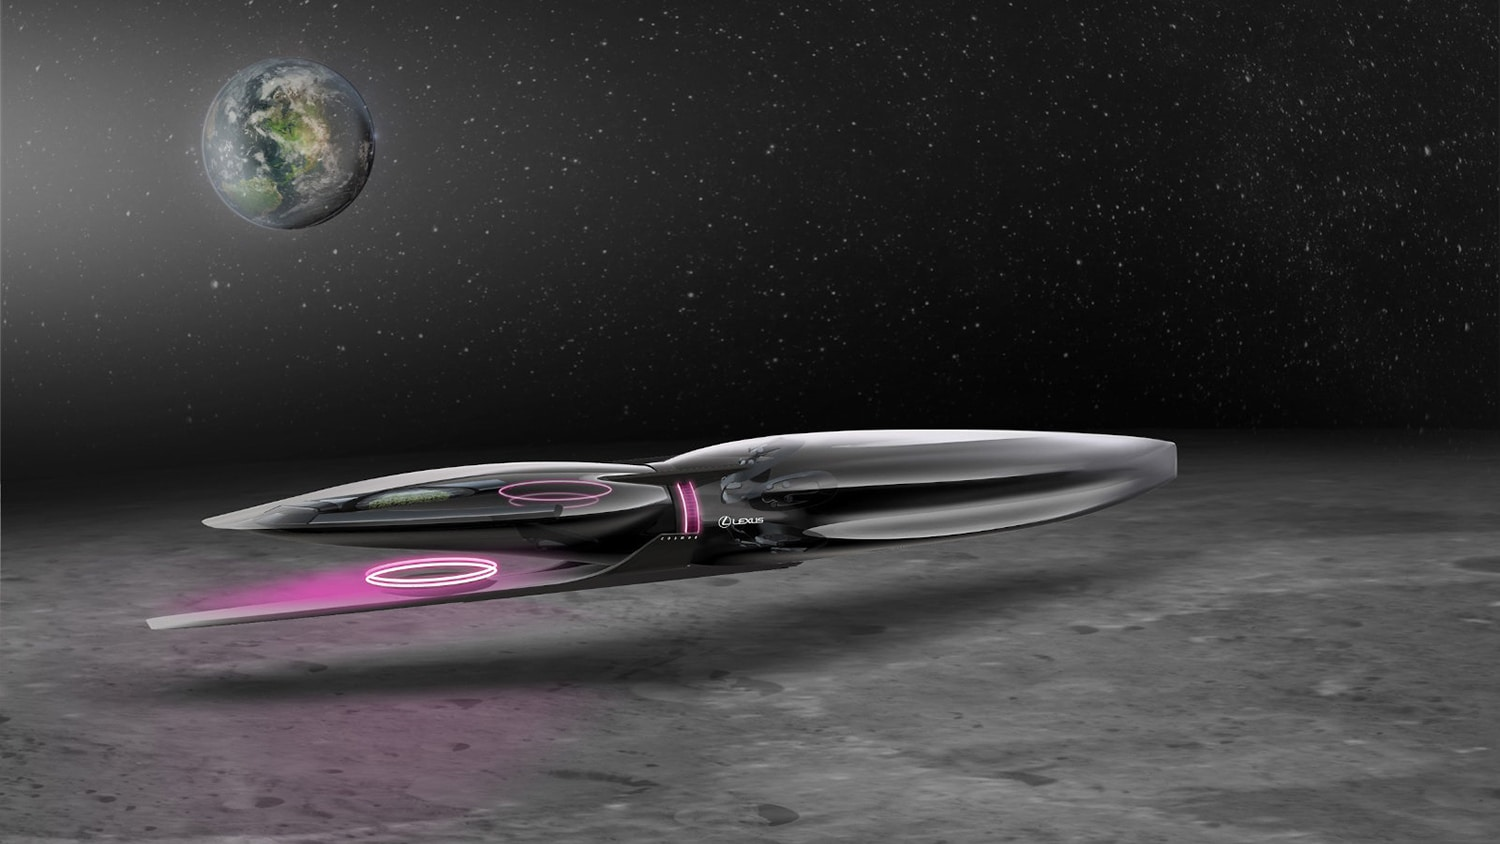 Lexus introduced seven unrealistic transport concepts for the Moon